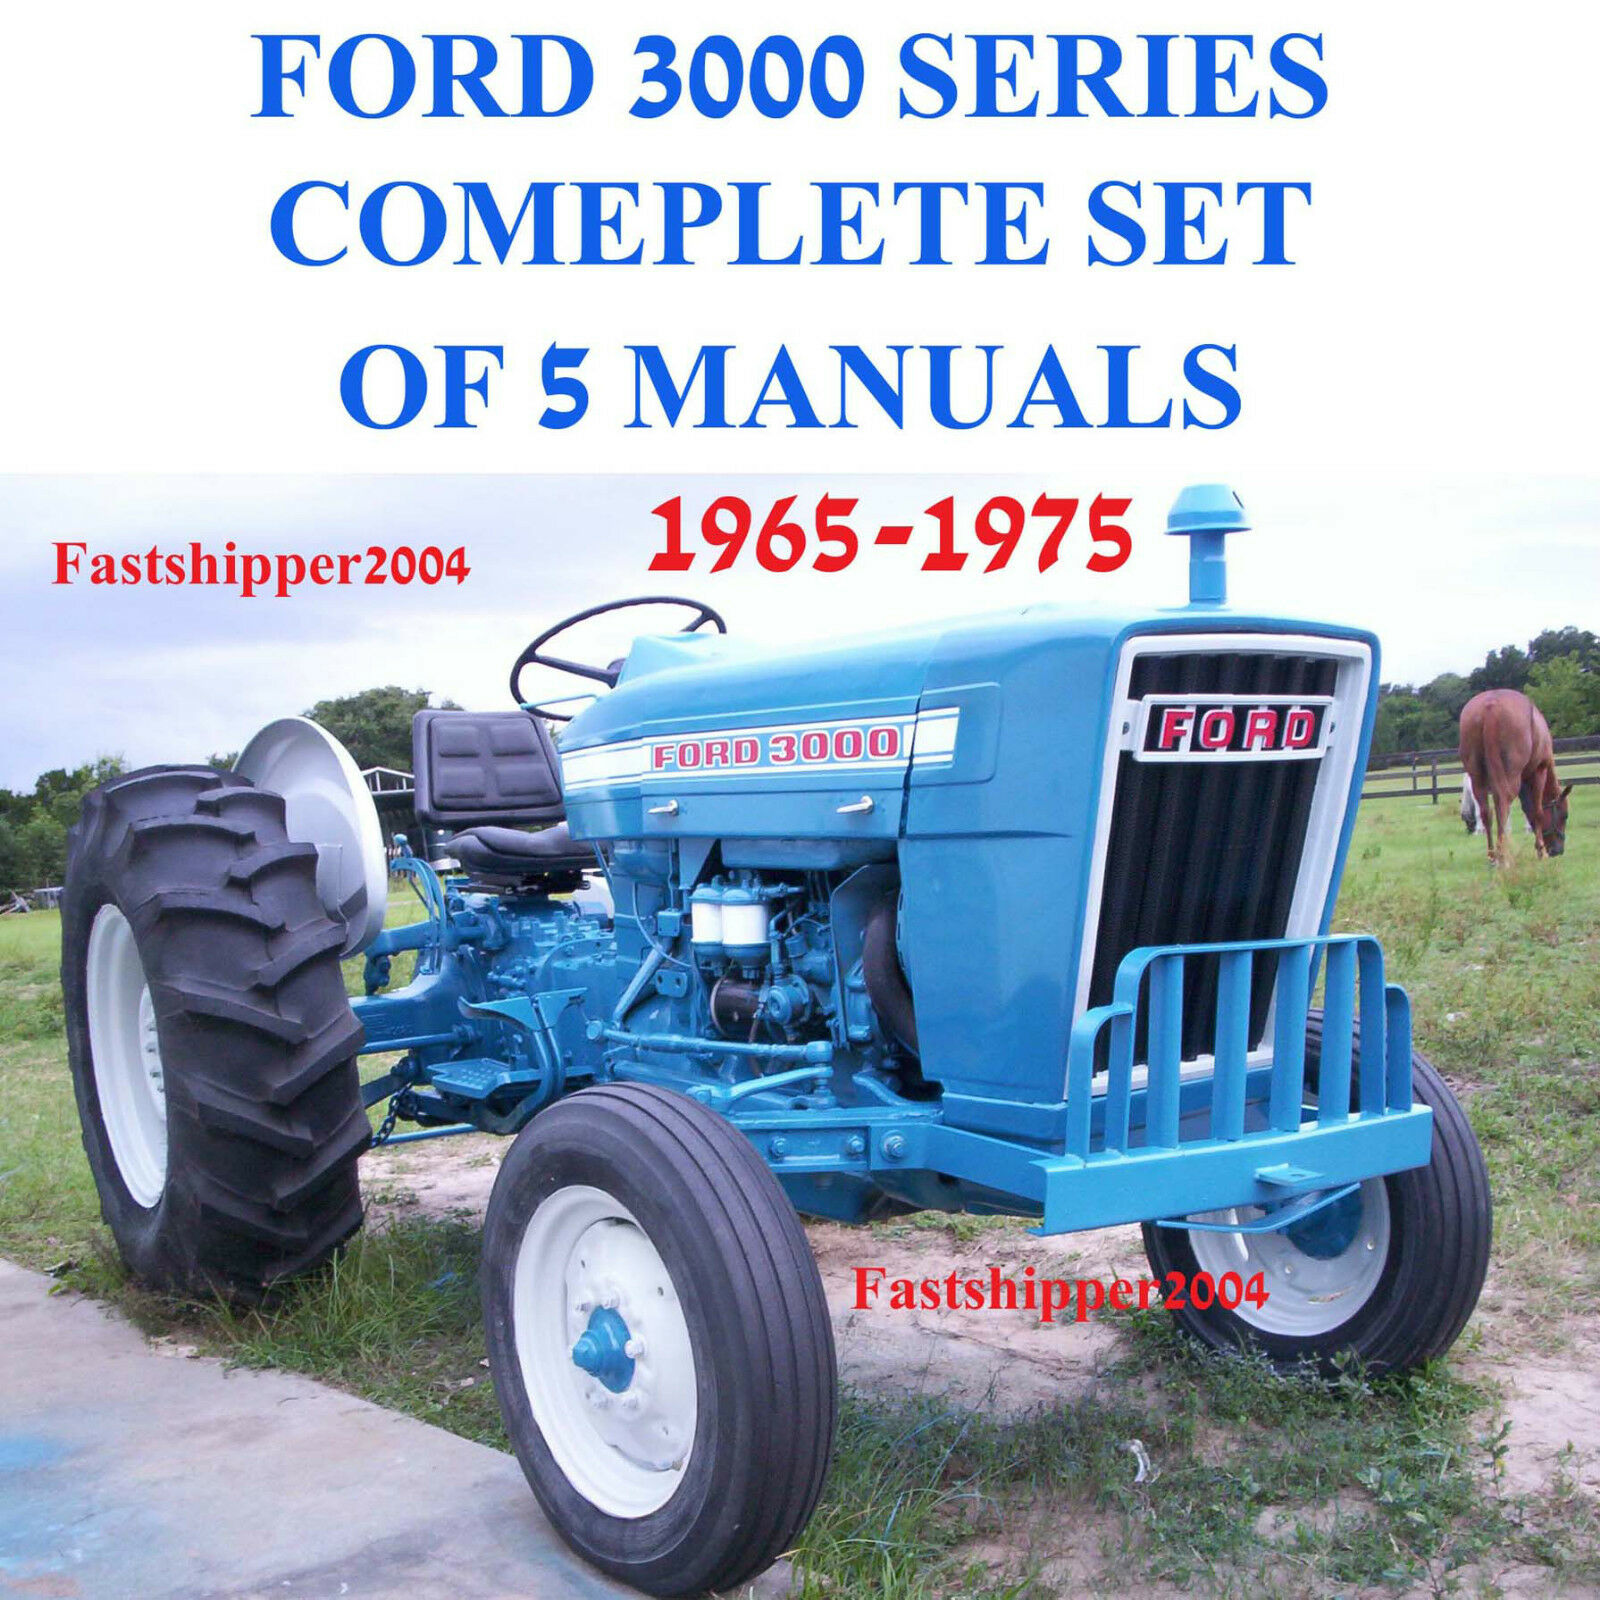 ford 3000 series tractor service parts catalog owners manual 5 rh picclick com ford 3000 tractor owners manual pdf ford 3000 tractor service manual download